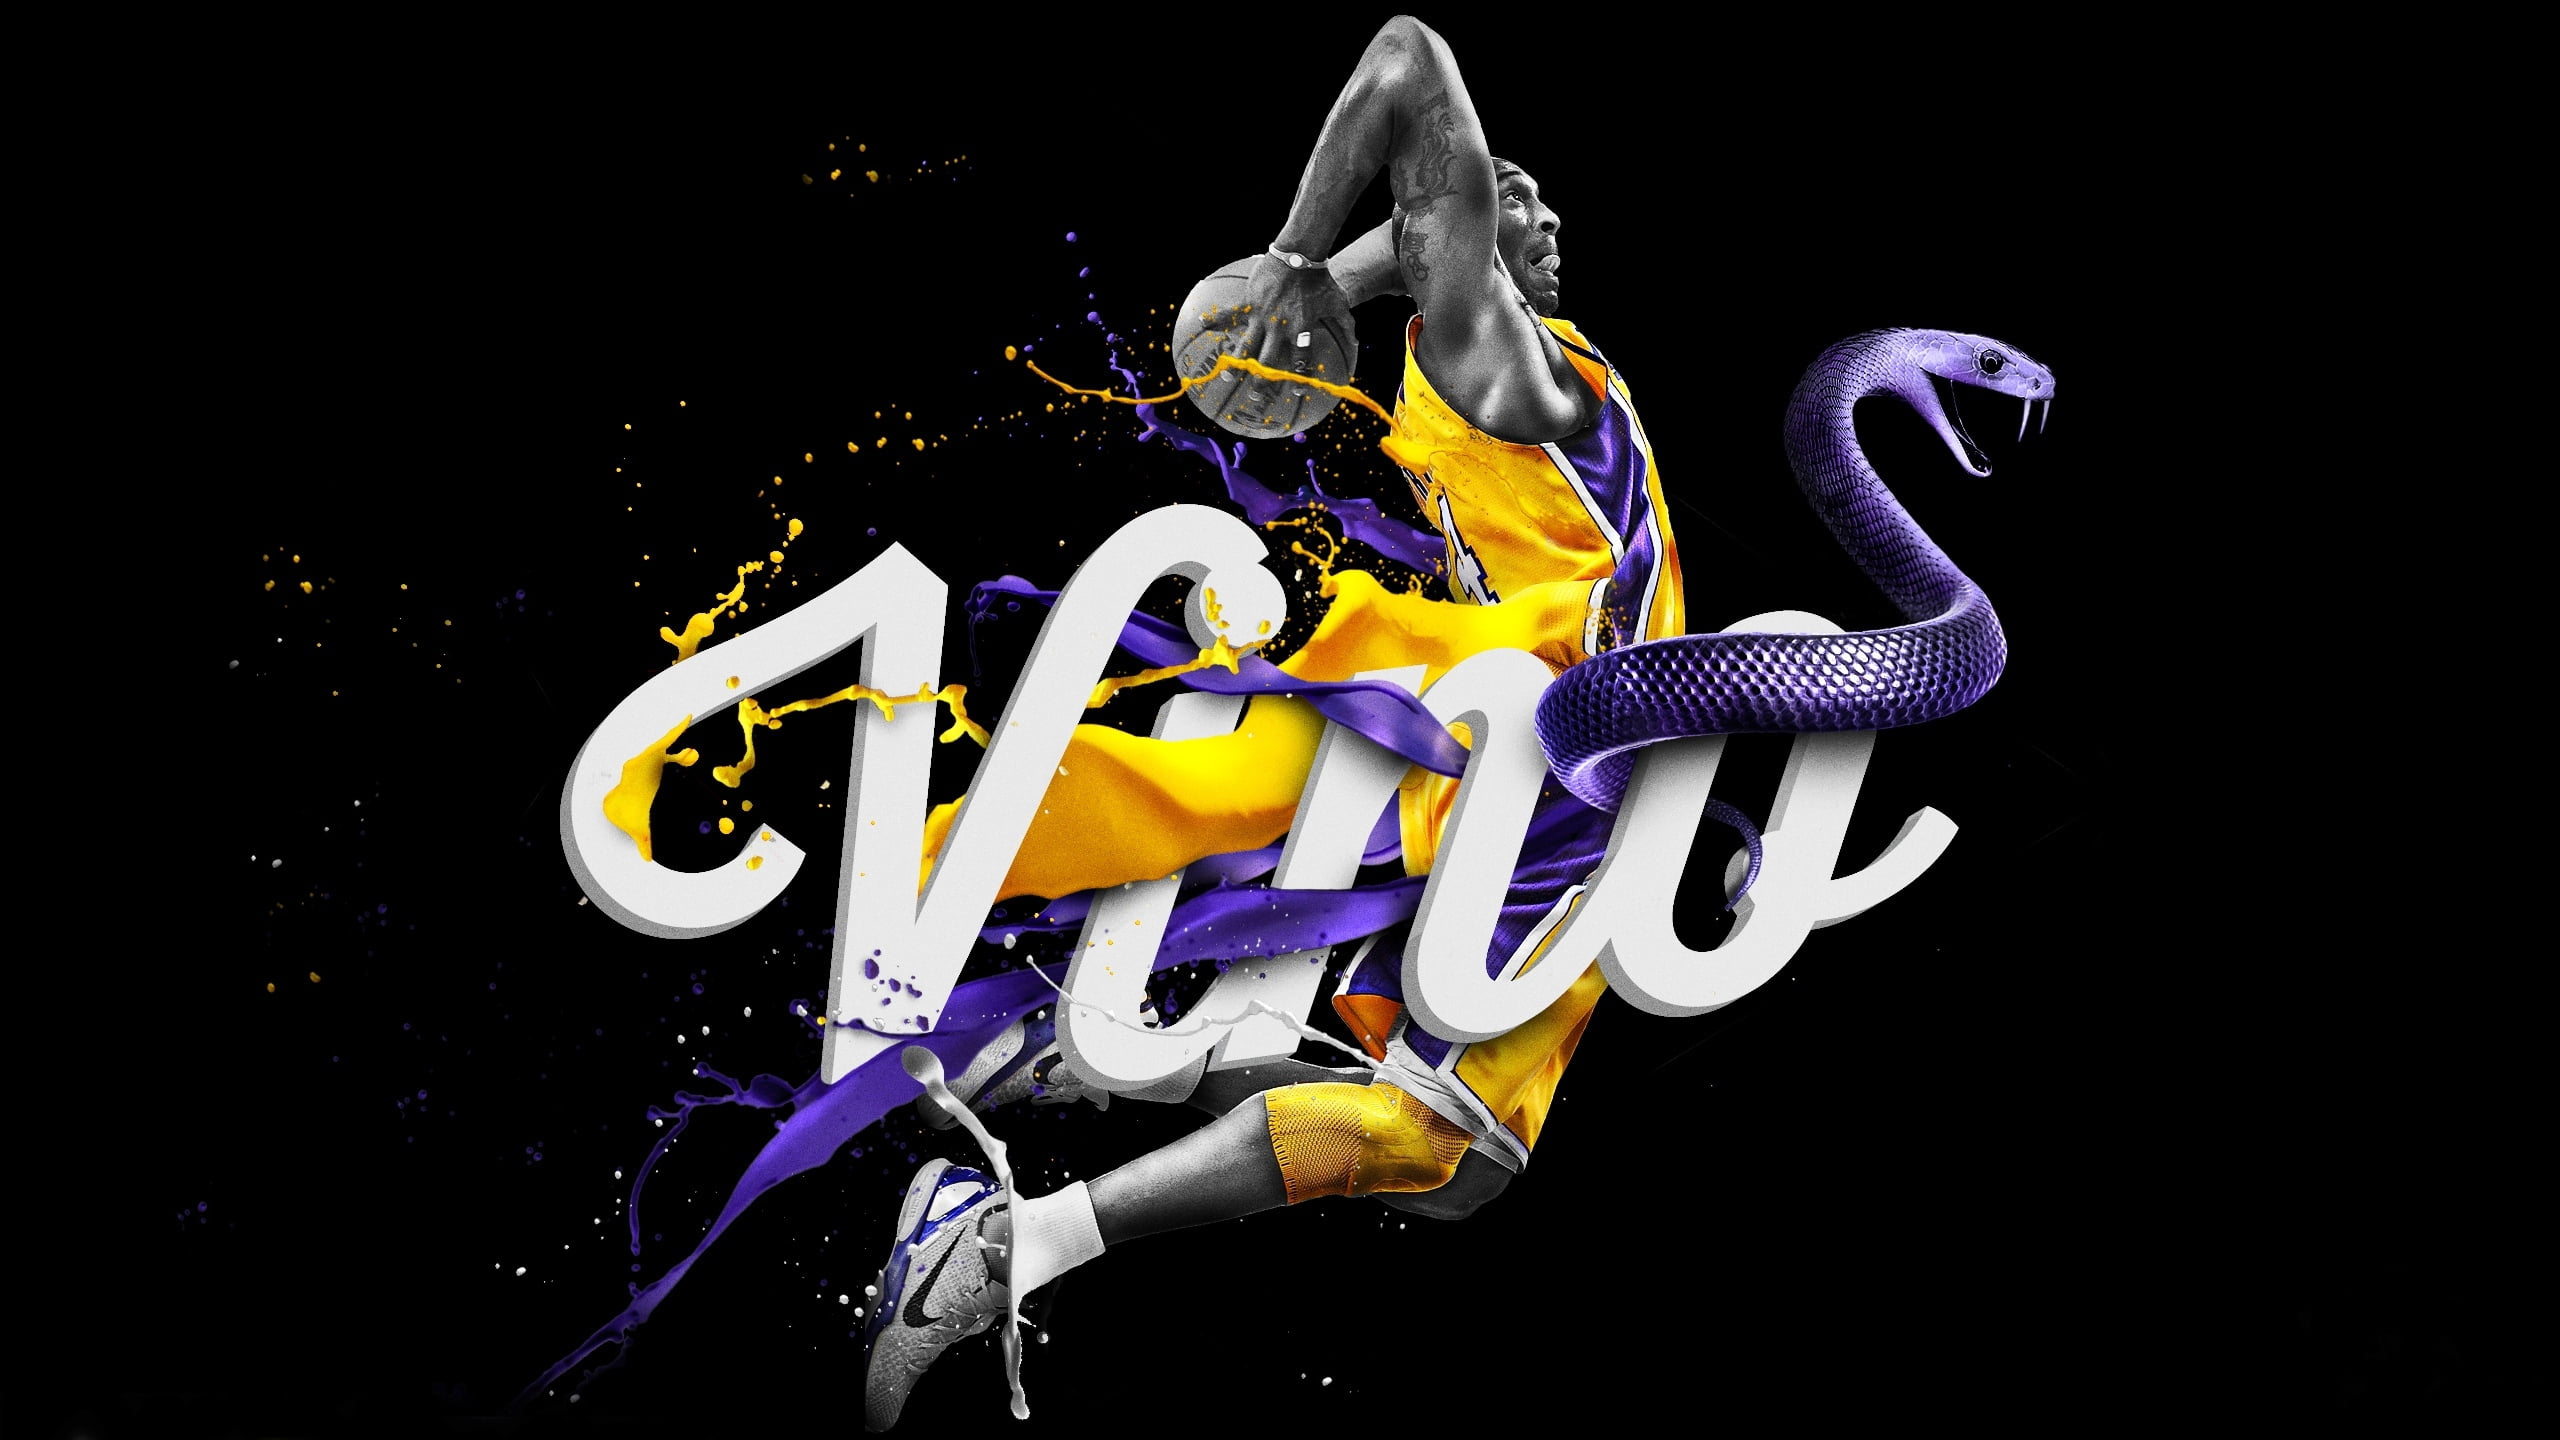 Dope Nba Logo: Sports Wallpaper • Kobe Bryant Wallpaper, Los Angeles